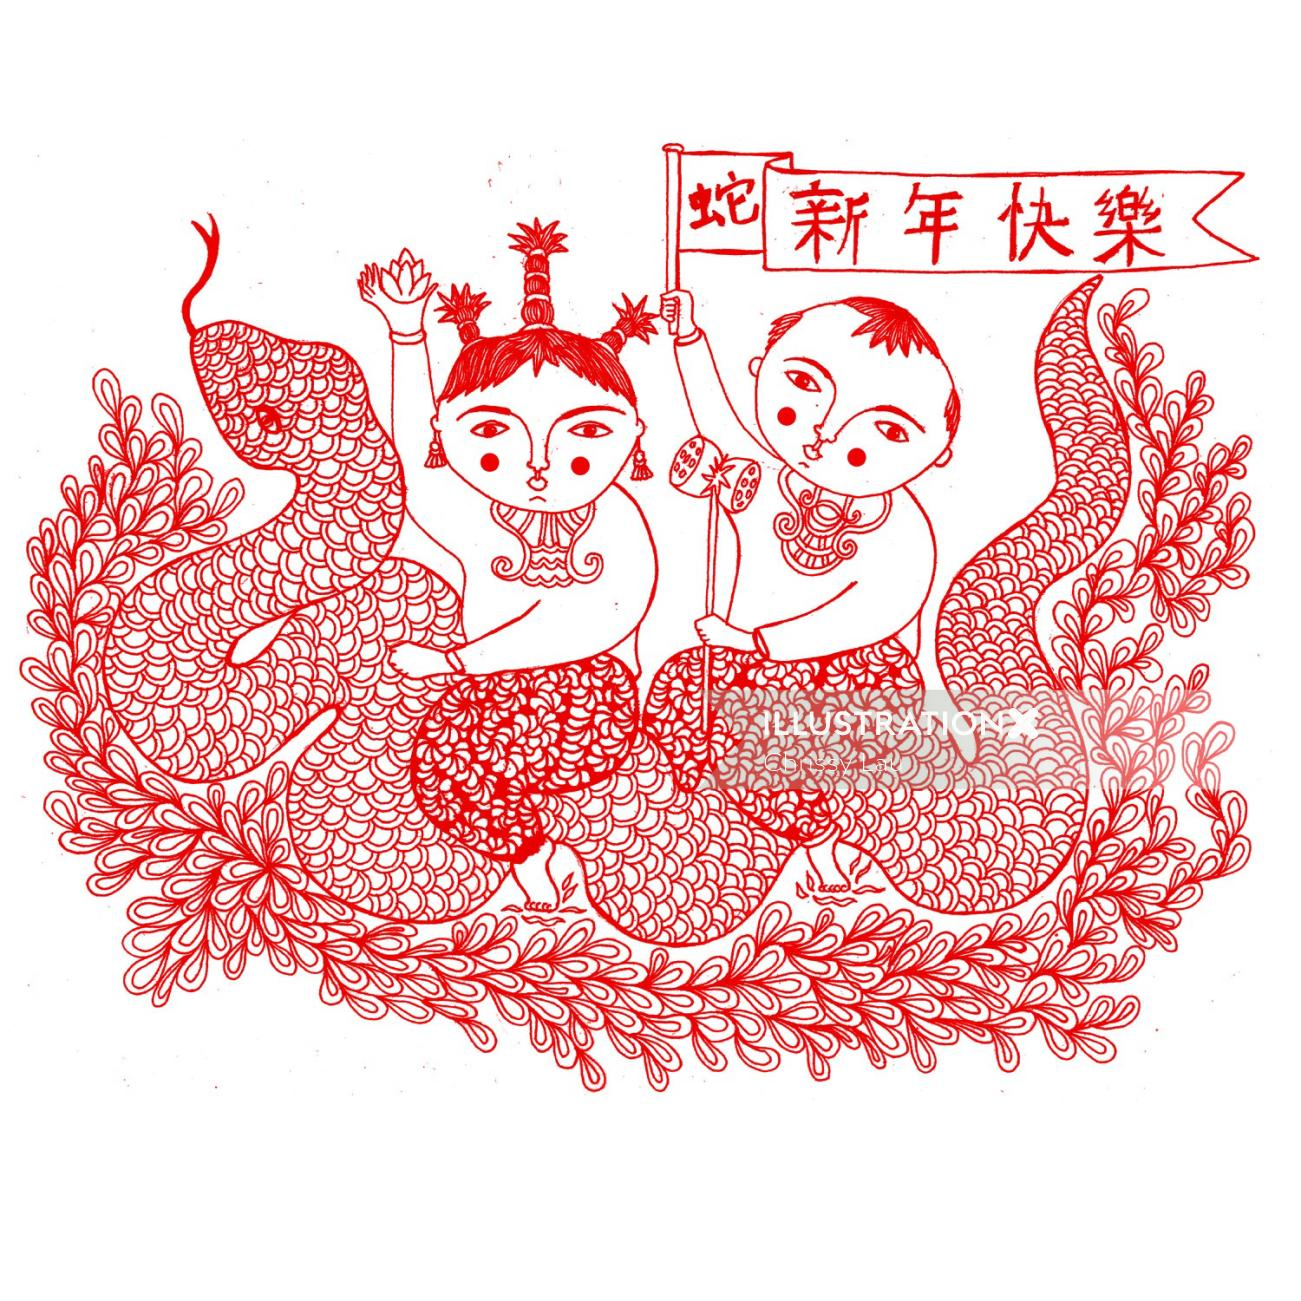 Graphic design of Chinese babies